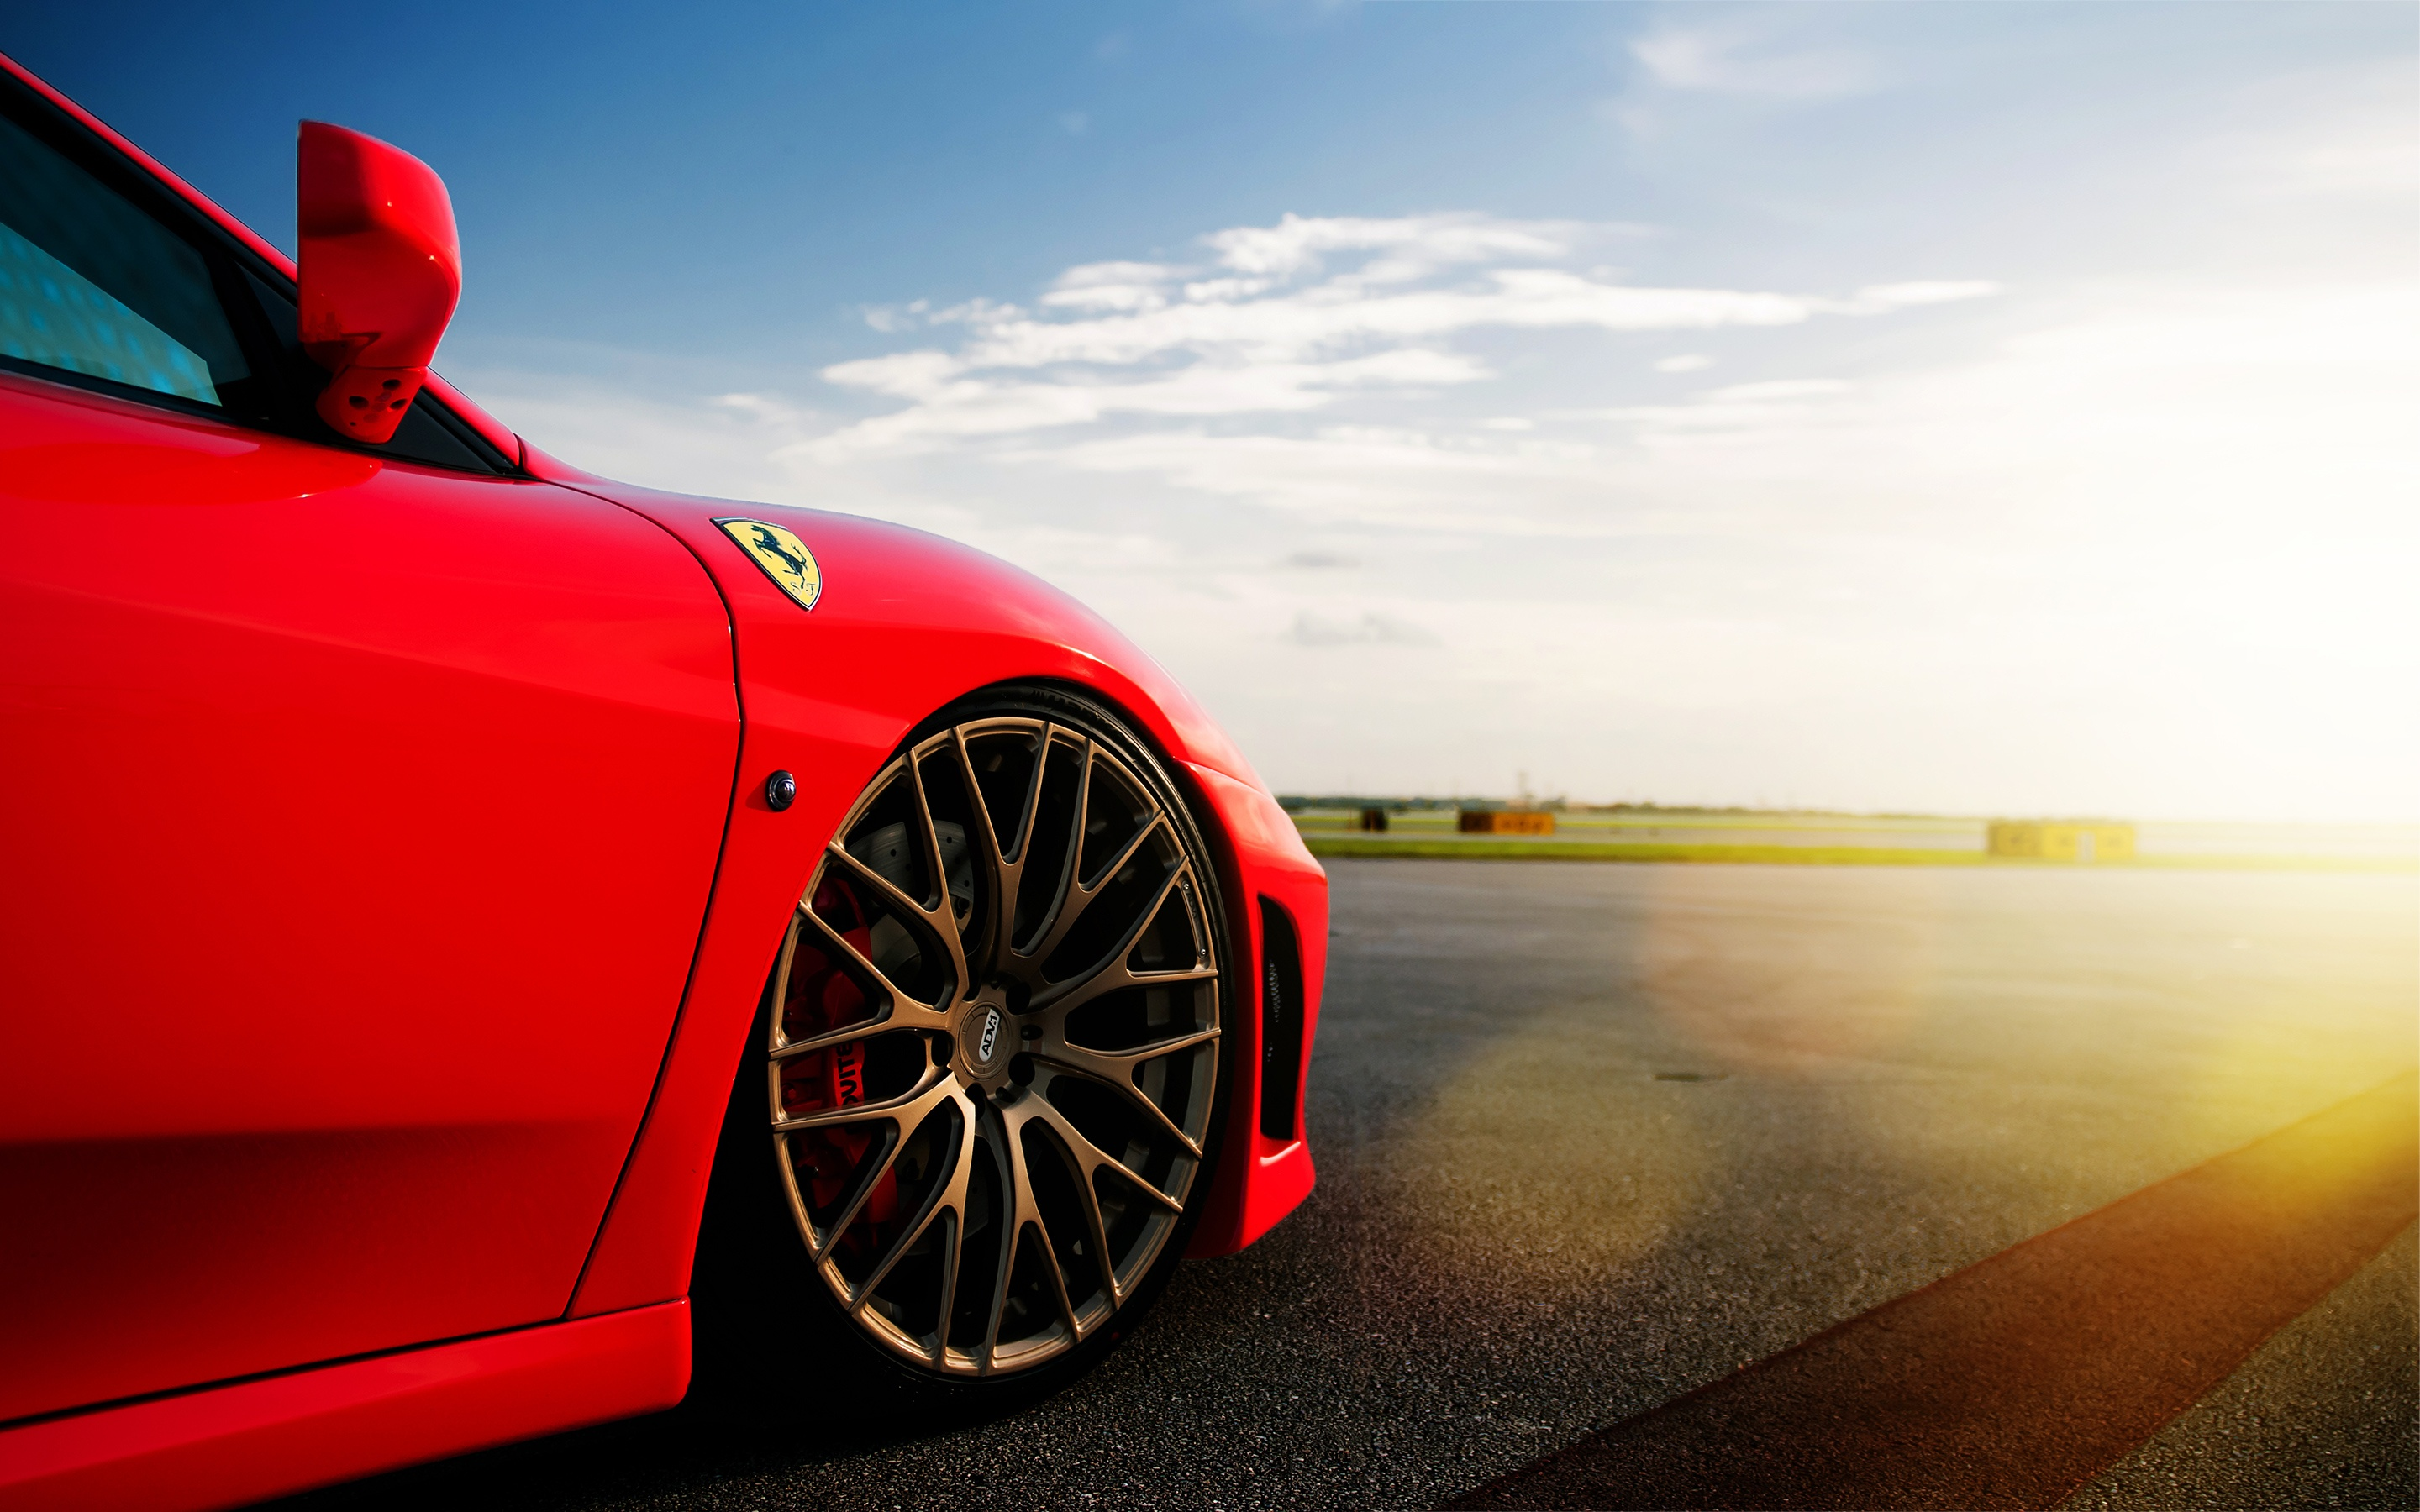 Free Images Ferrari Hd Wallpapers